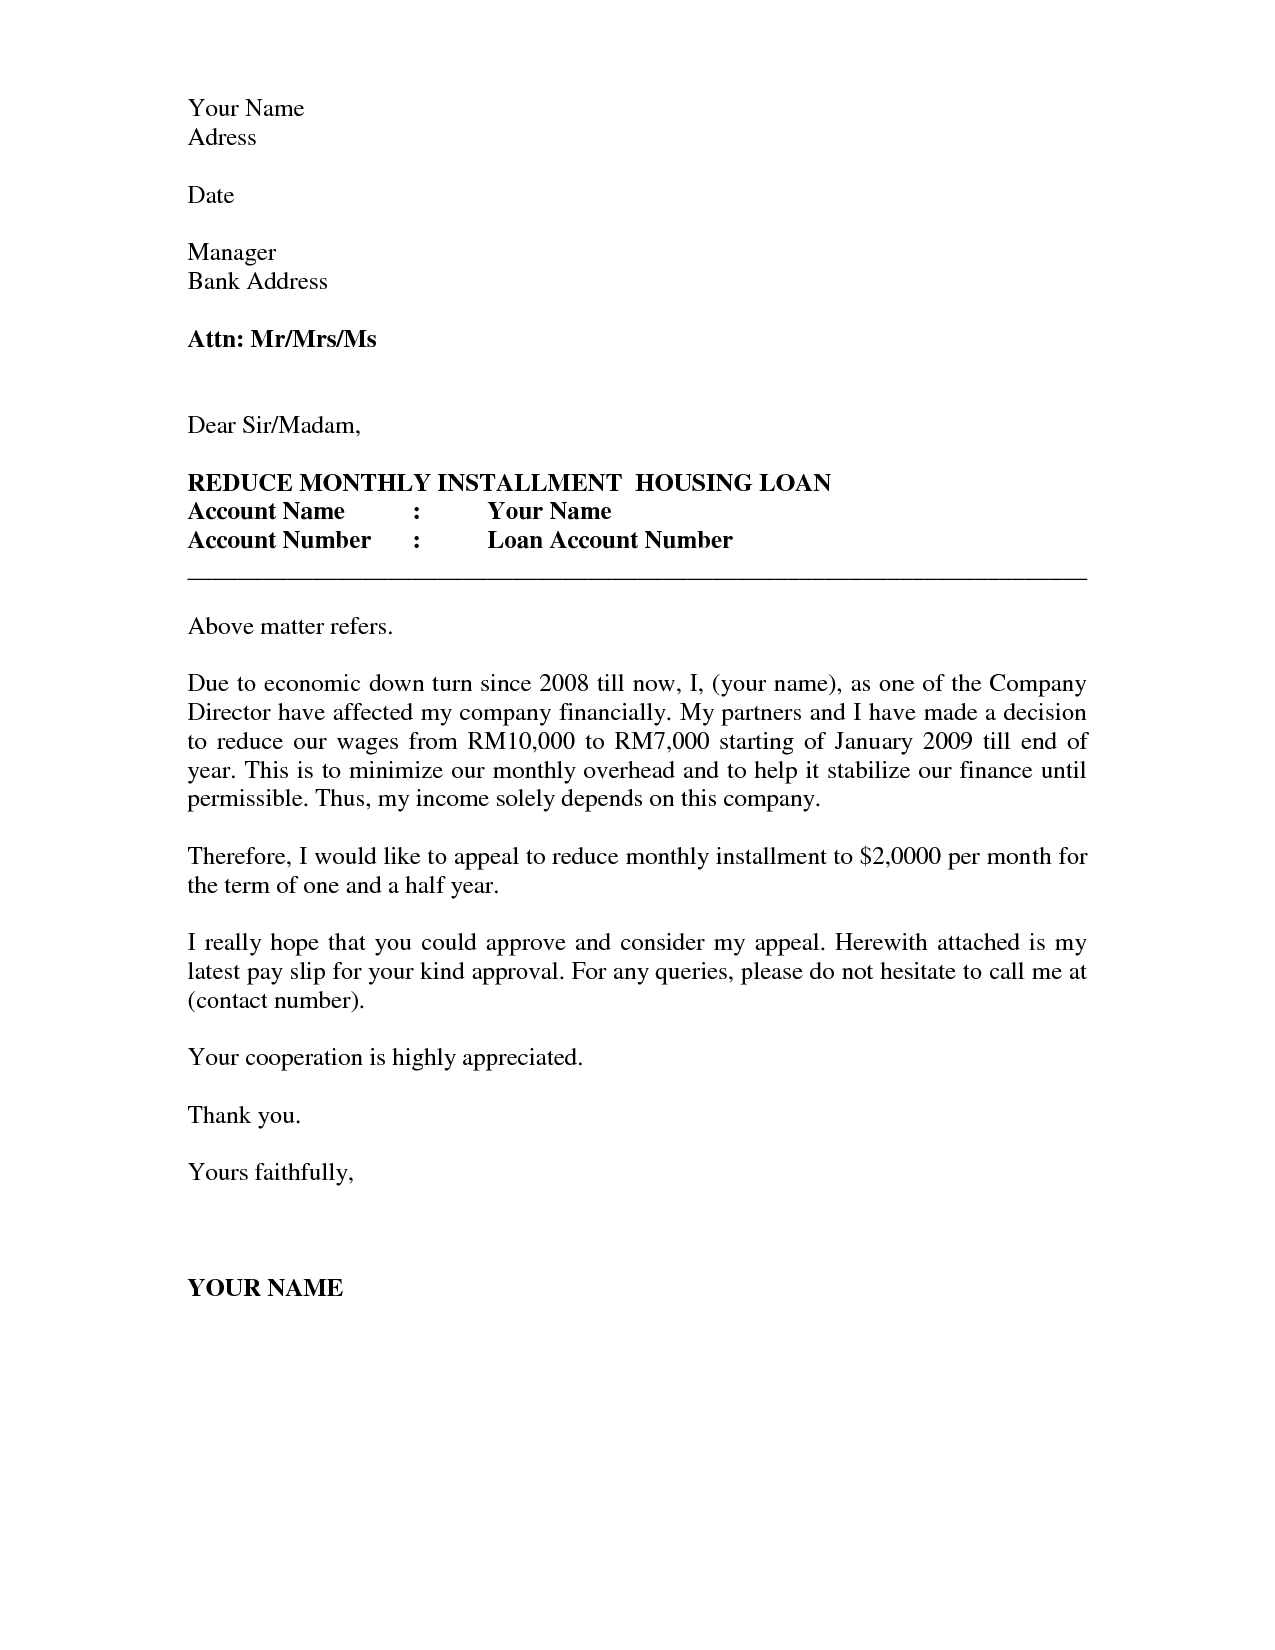 Business Appeal Letter - A letter of appeal should be written in a  professional business letter format.